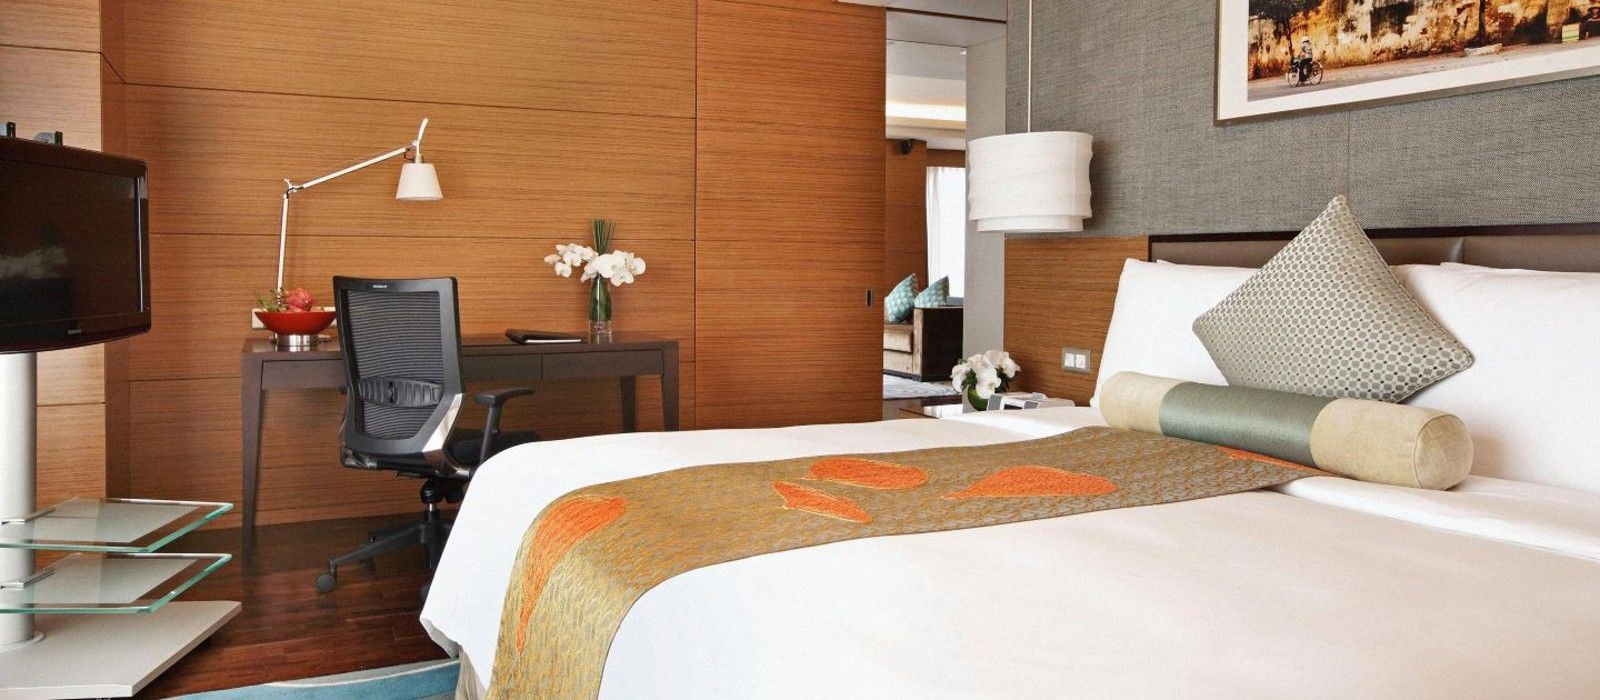 Hotel IC Asiana Saigon (Ho Chi Minh City) Vietnam